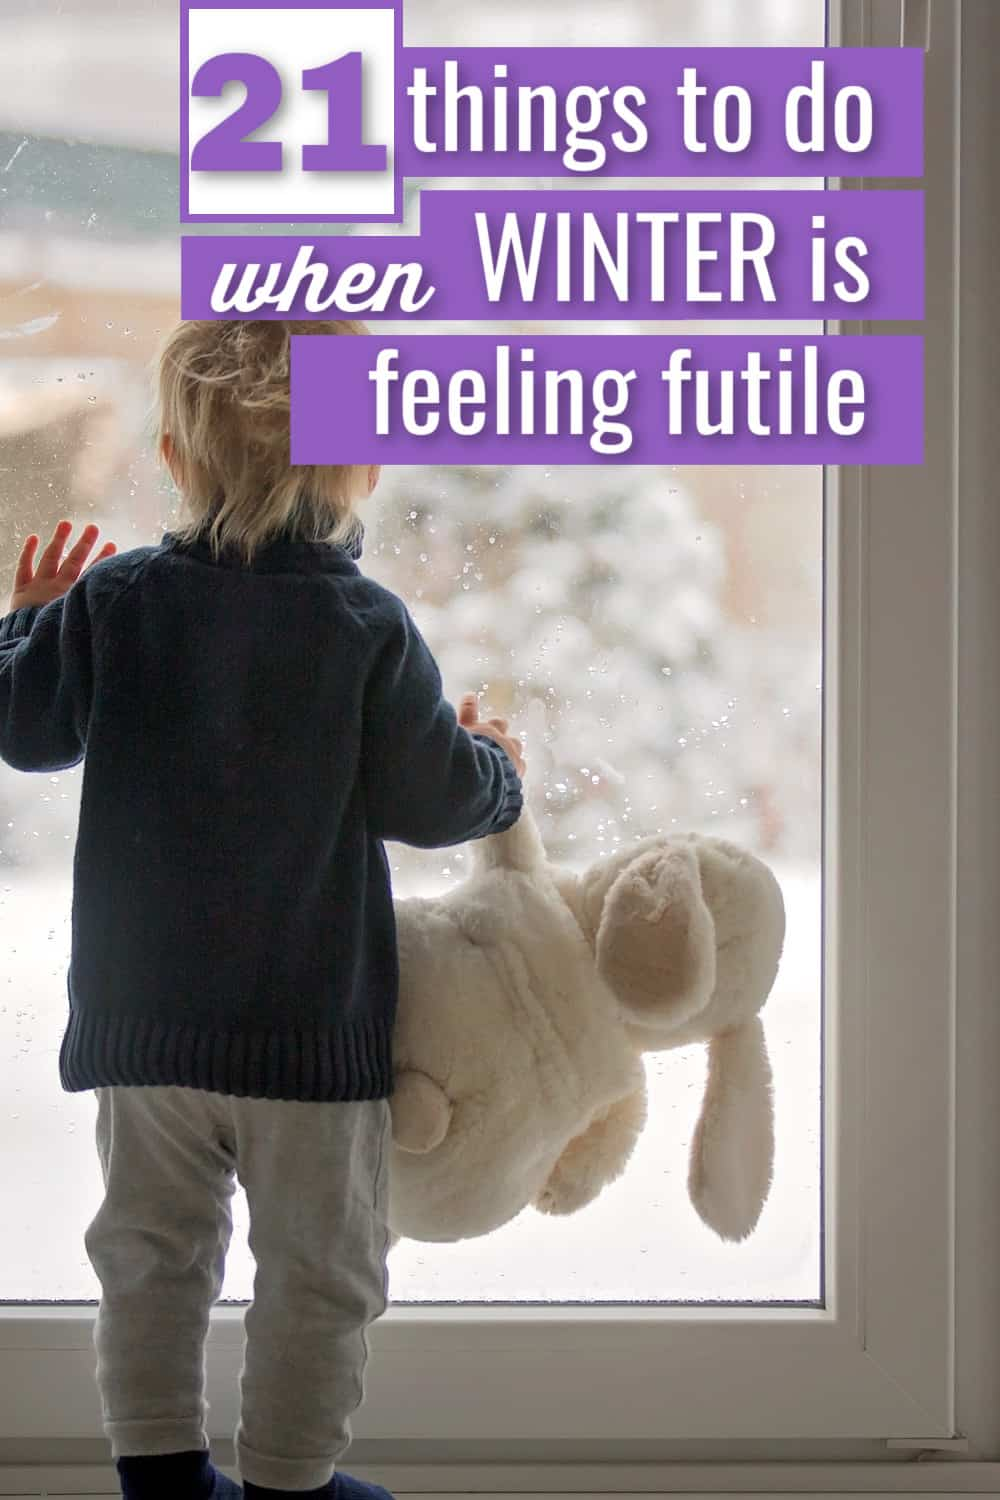 small child  with bunny rabbit looking out a glass door at winter